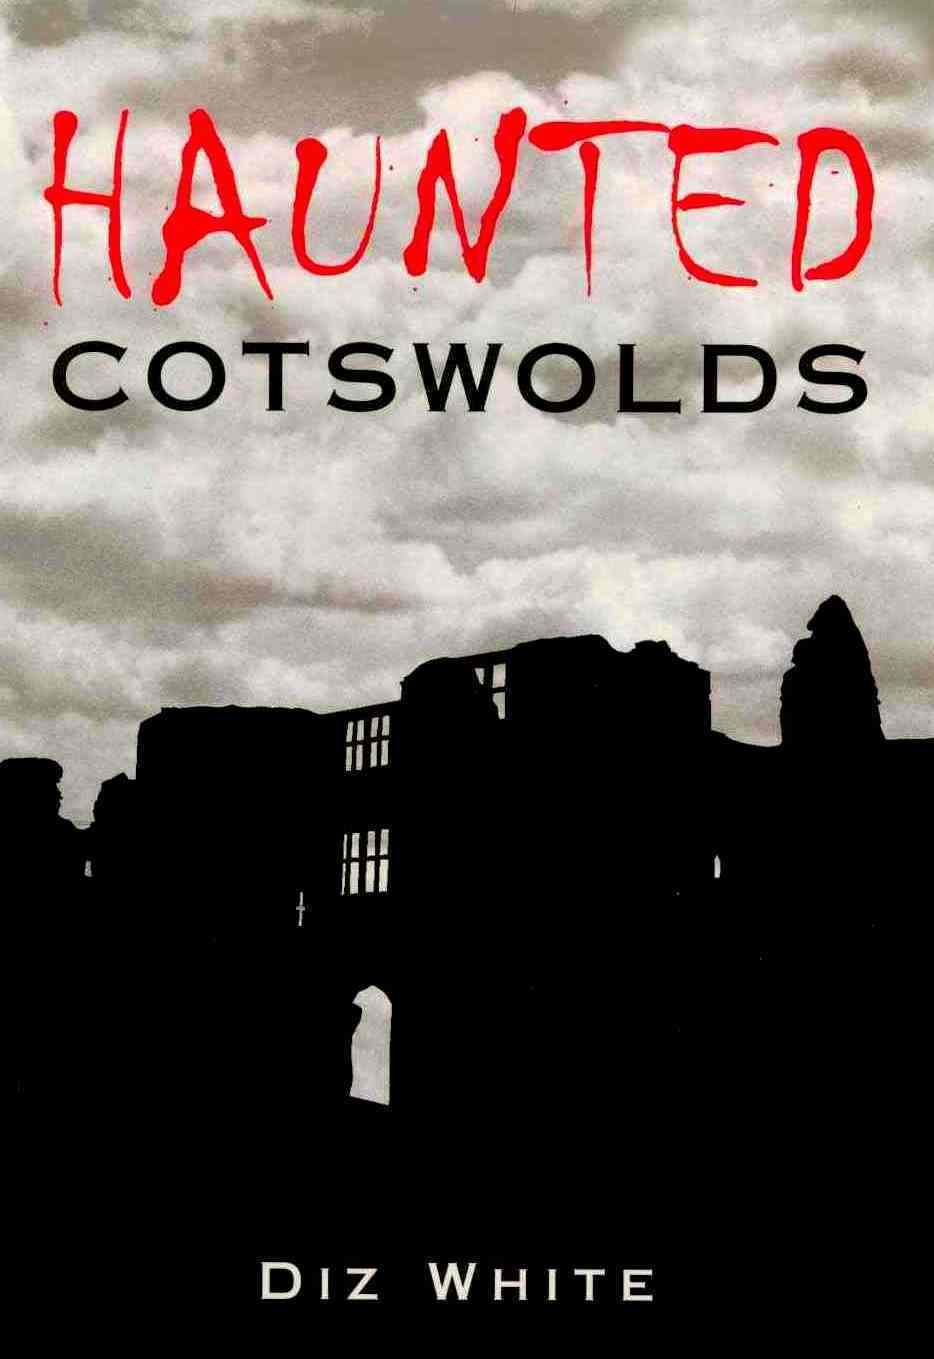 Diz White S New Book Haunted Cotswolds Out Halloween